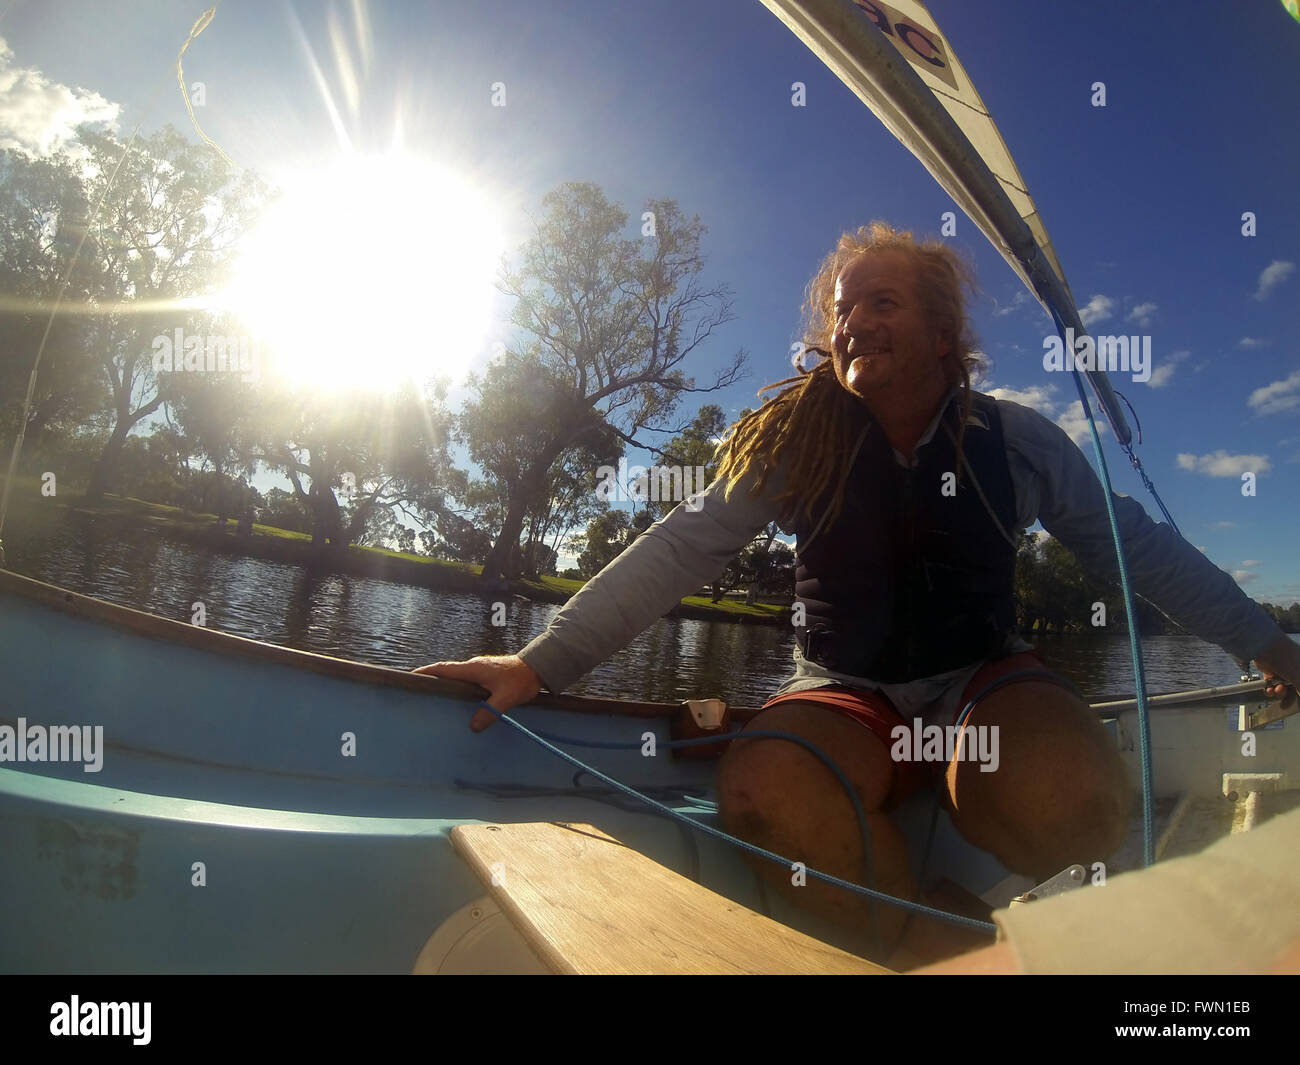 happy-man-sailing-small-dinghy-swan-rive